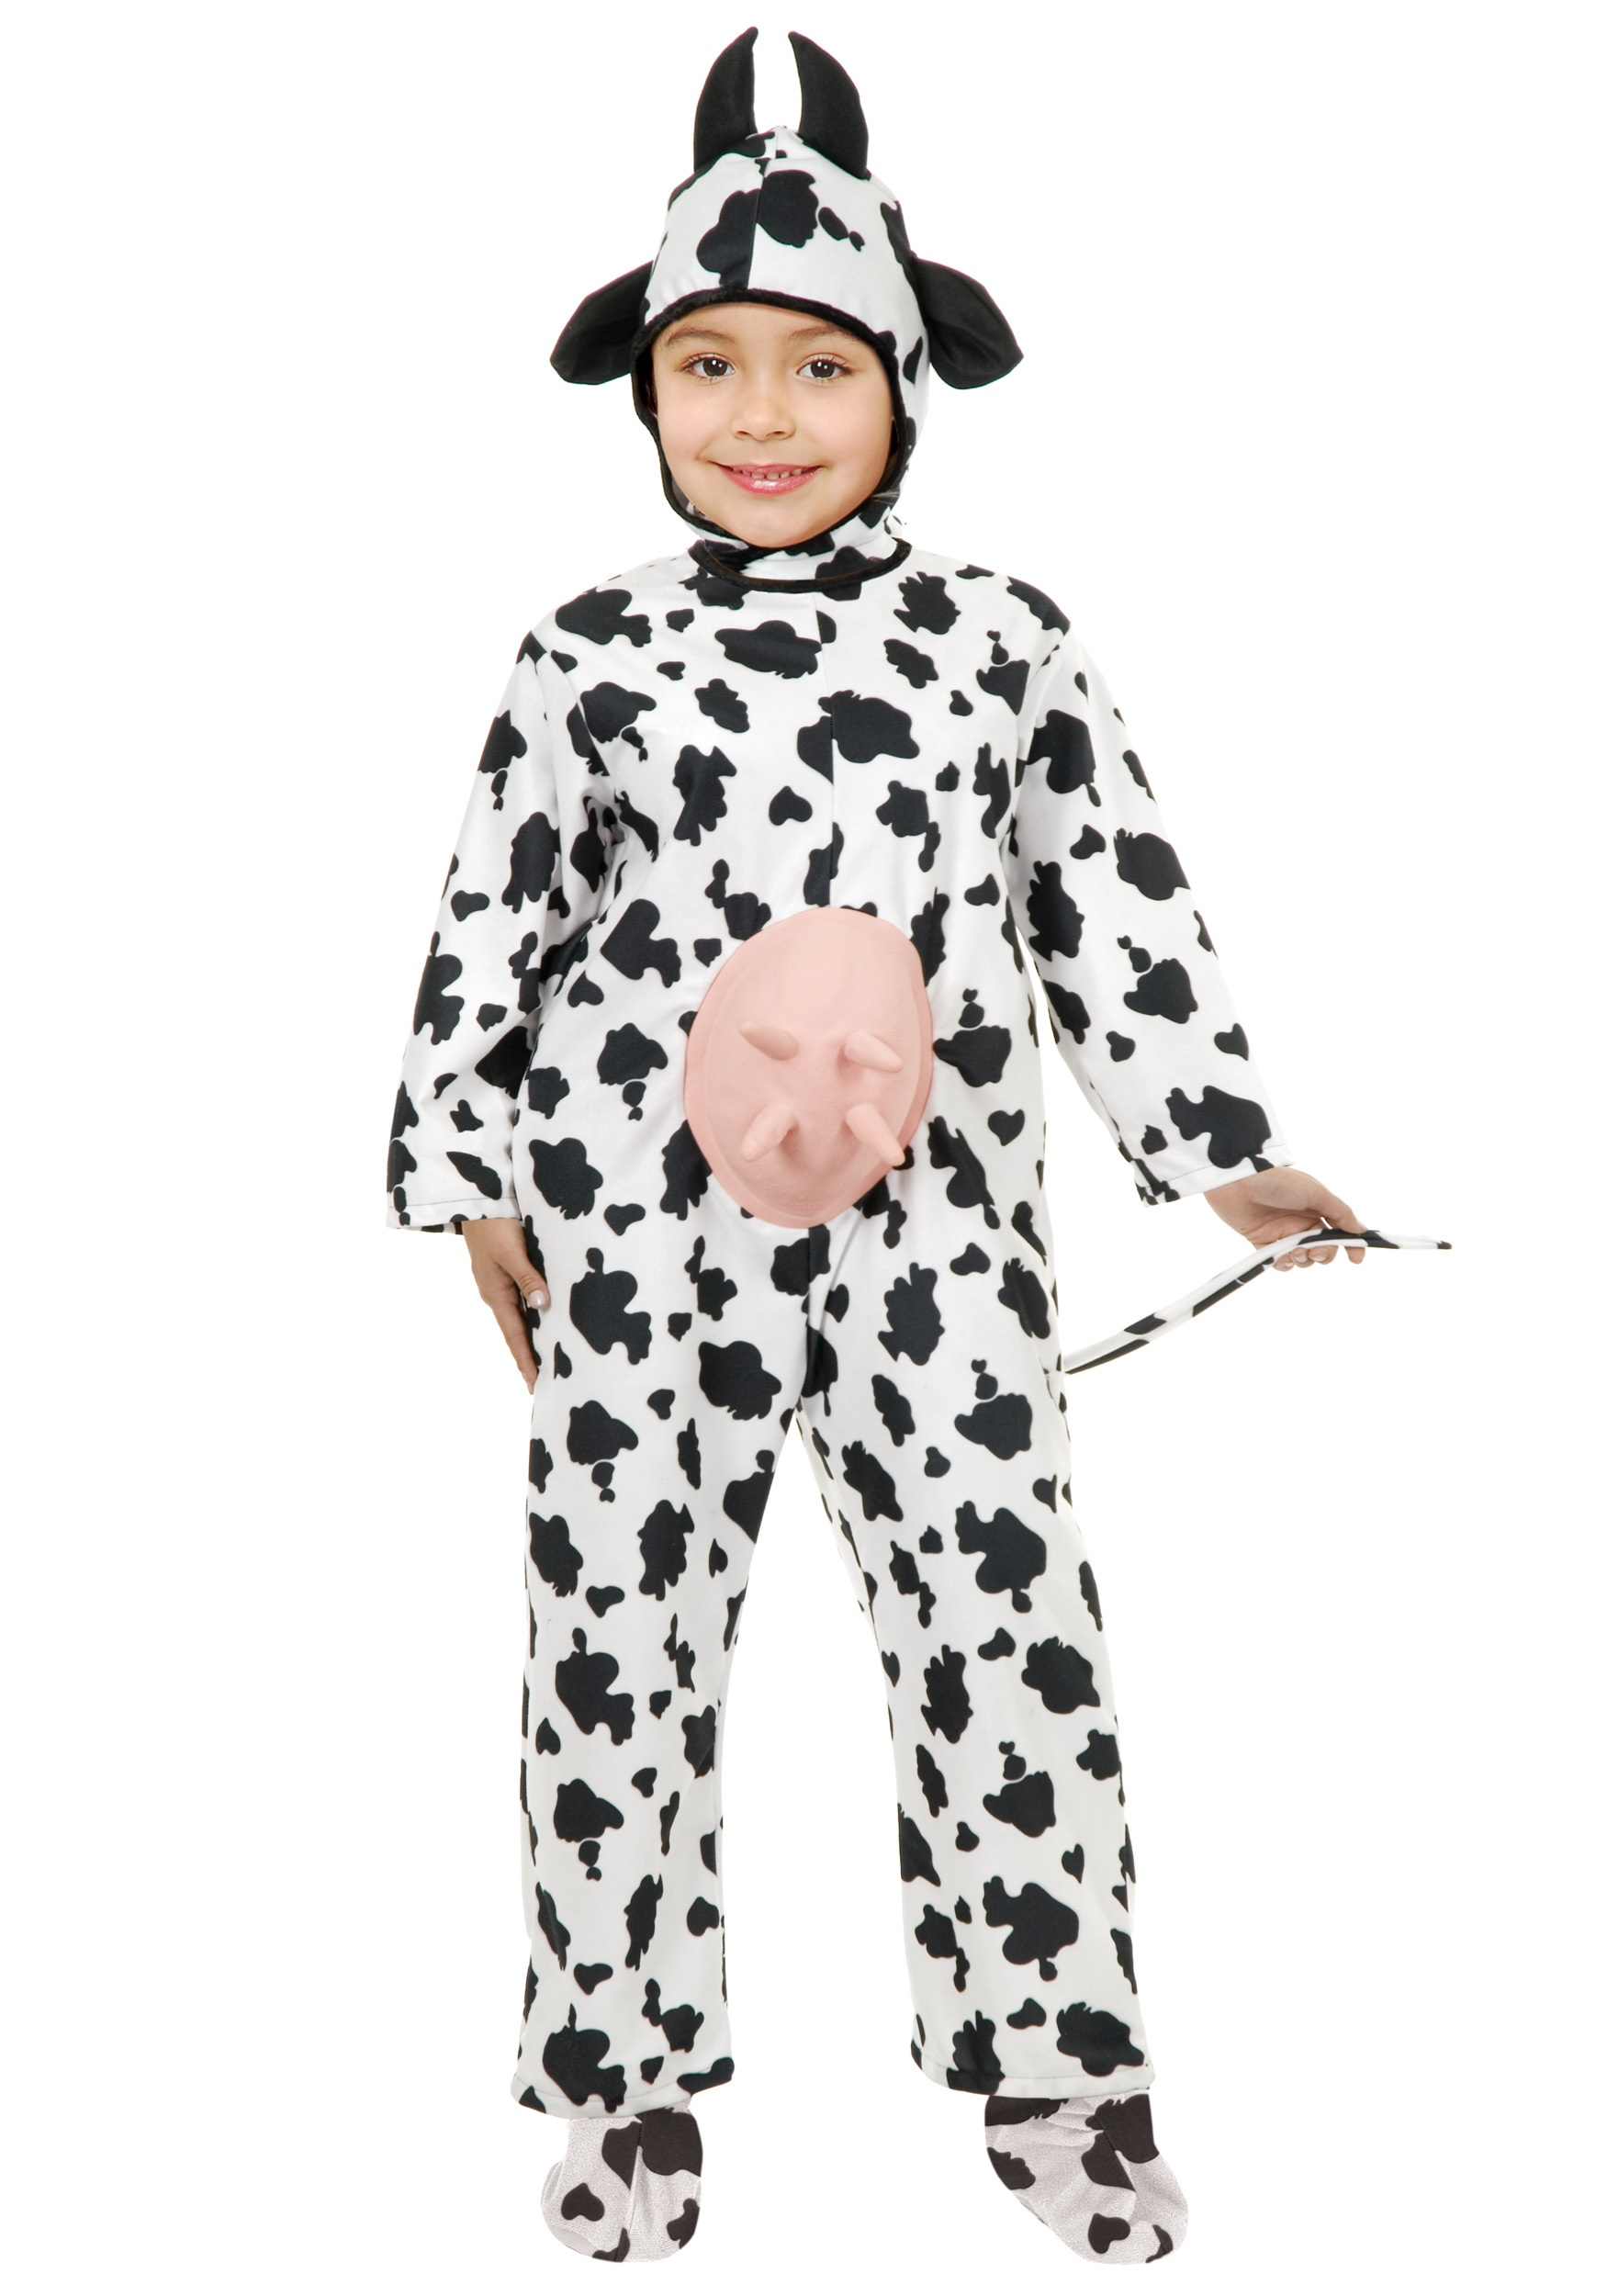 Child Cow with Udder Costume  sc 1 st  Halloween Costumes : cow costume for child  - Germanpascual.Com